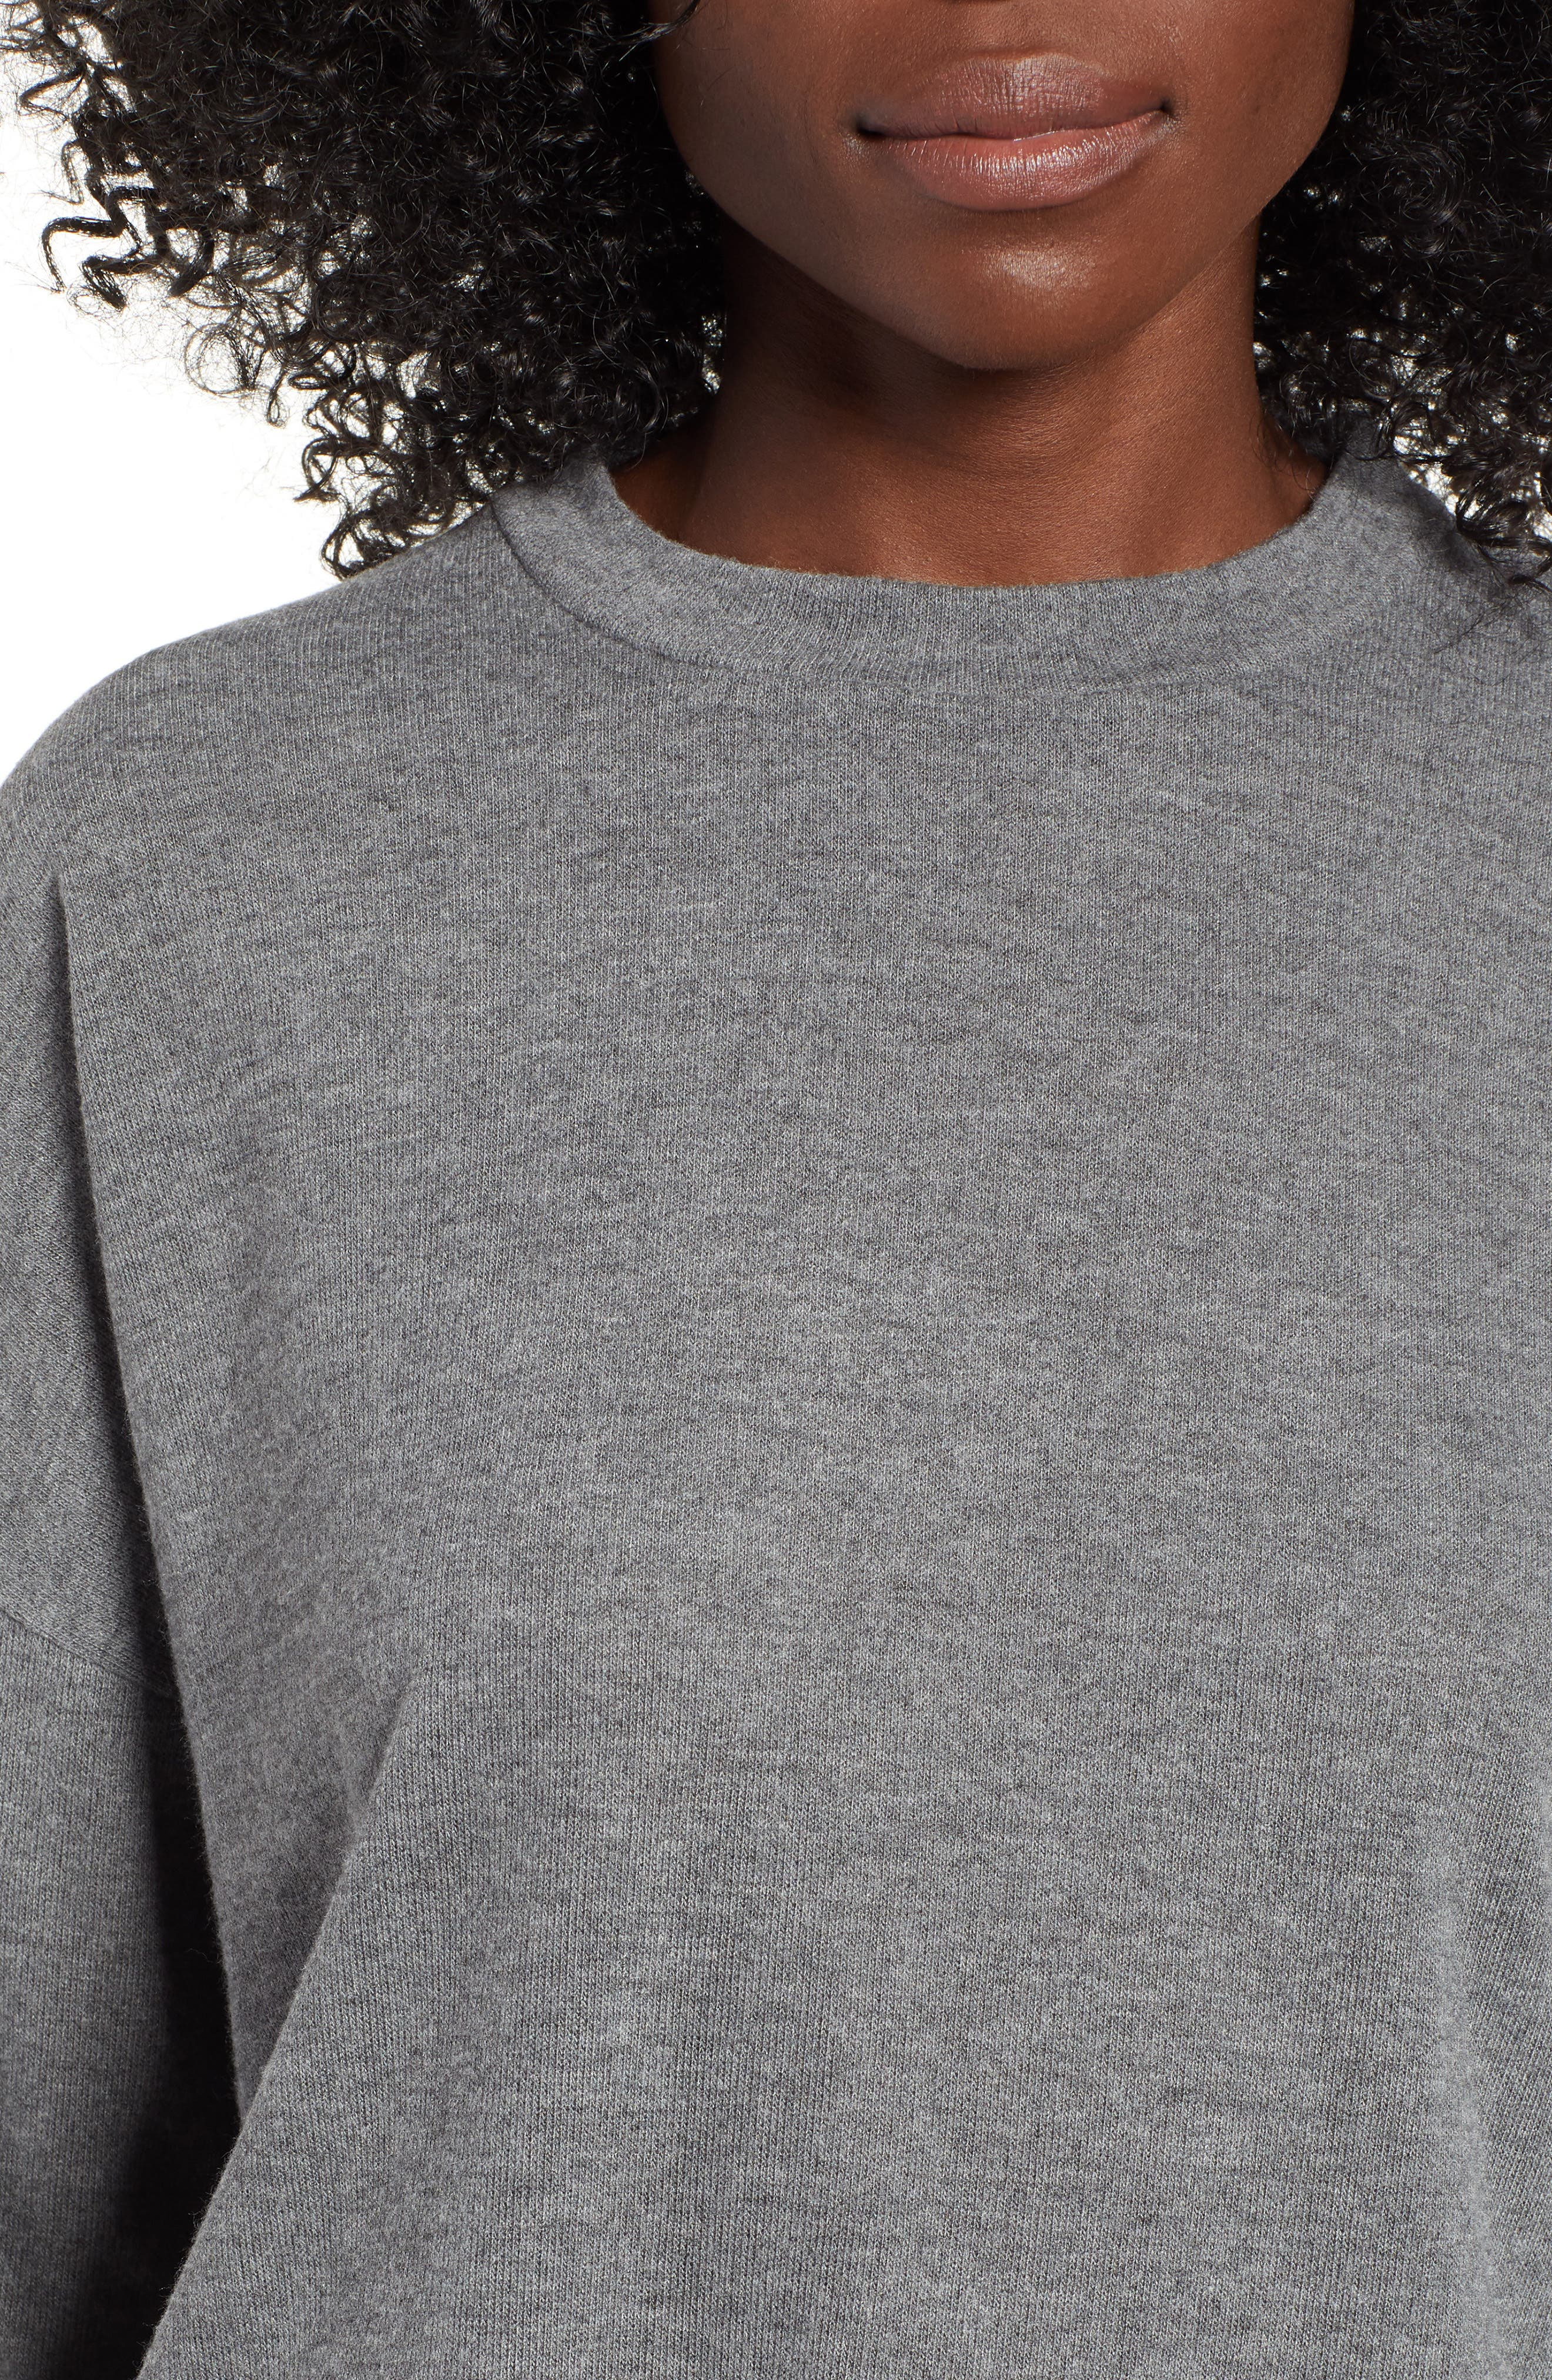 Drop Shoulder Tee,                             Alternate thumbnail 4, color,                             GREY CHARCOAL HEATHER